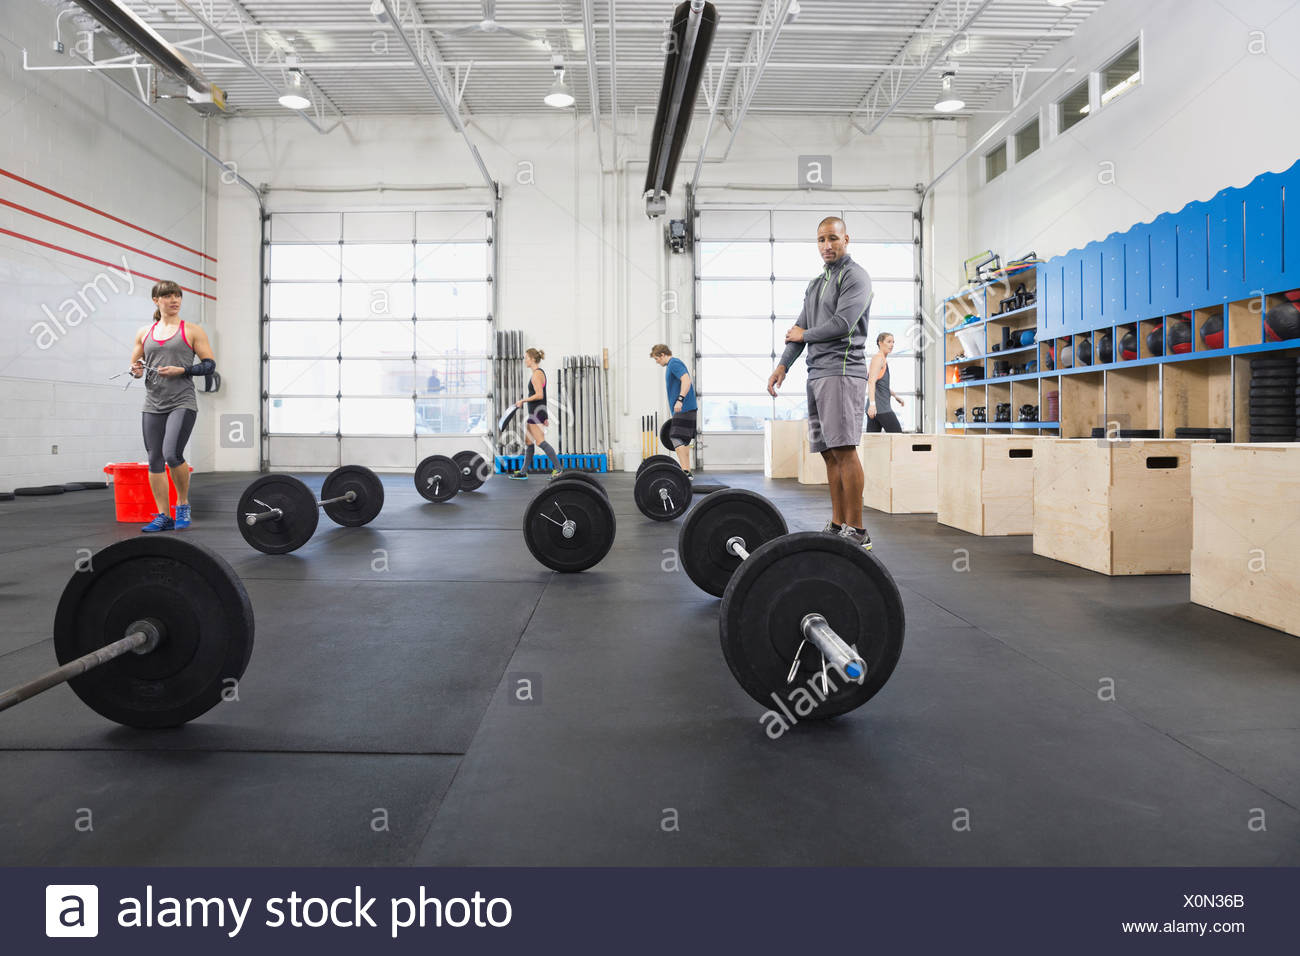 Group of people setting up Crossfit class - Stock Image